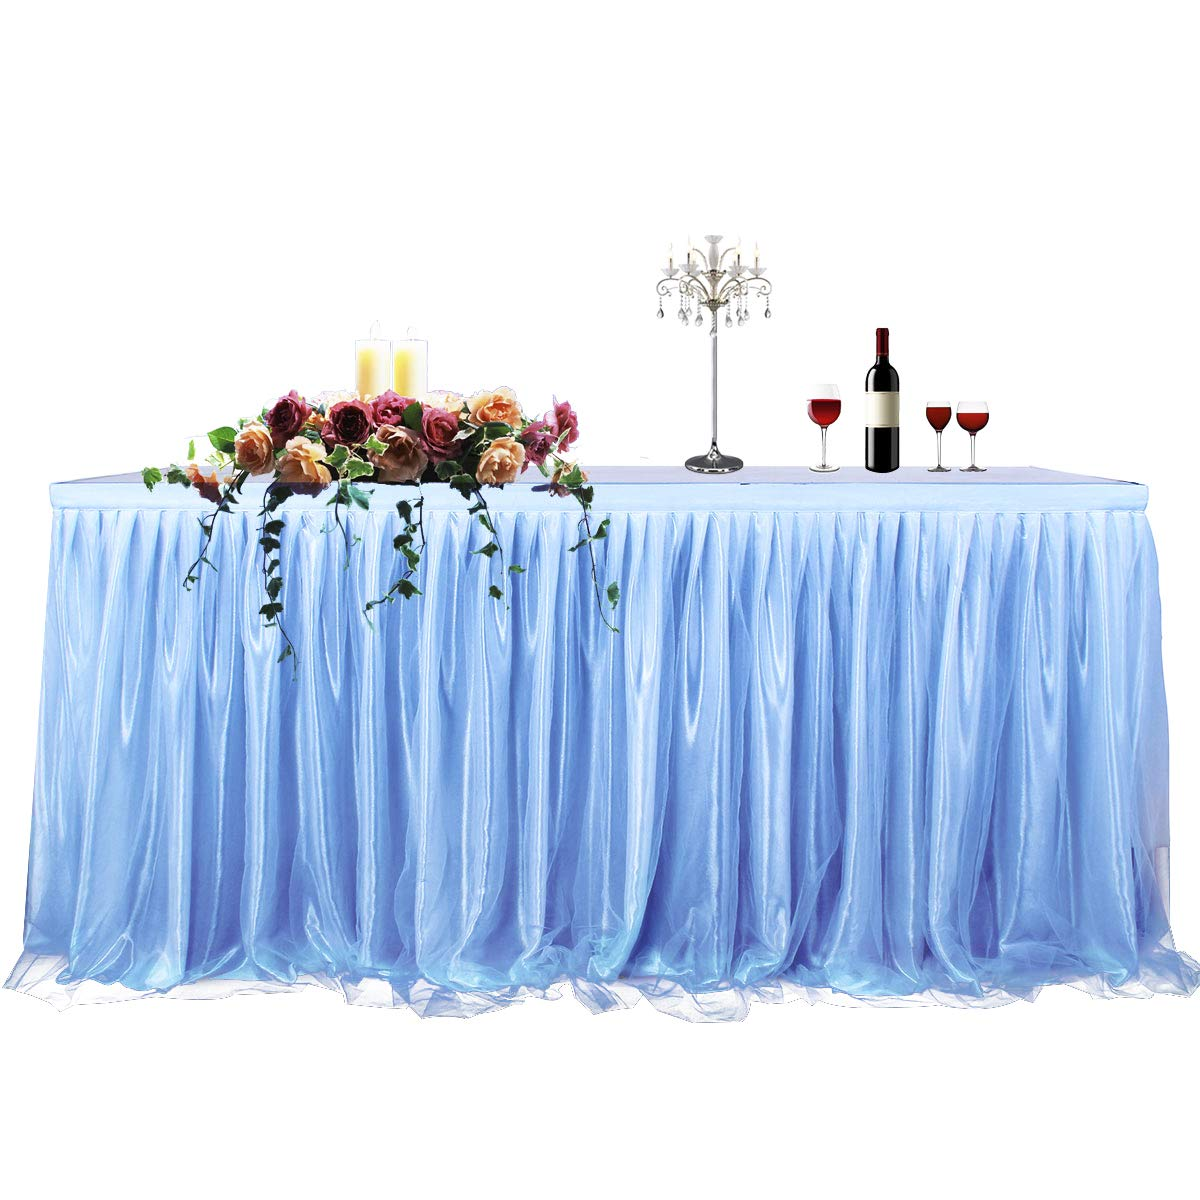 CO-AVE 6FT Baby Blue Table Skirt for Round or Rectangle Tables Dessert Tutu Table Skirting for Wedding Baby Shower Birthday Party Decorate(L72inch, H30inch) by CO-AVE